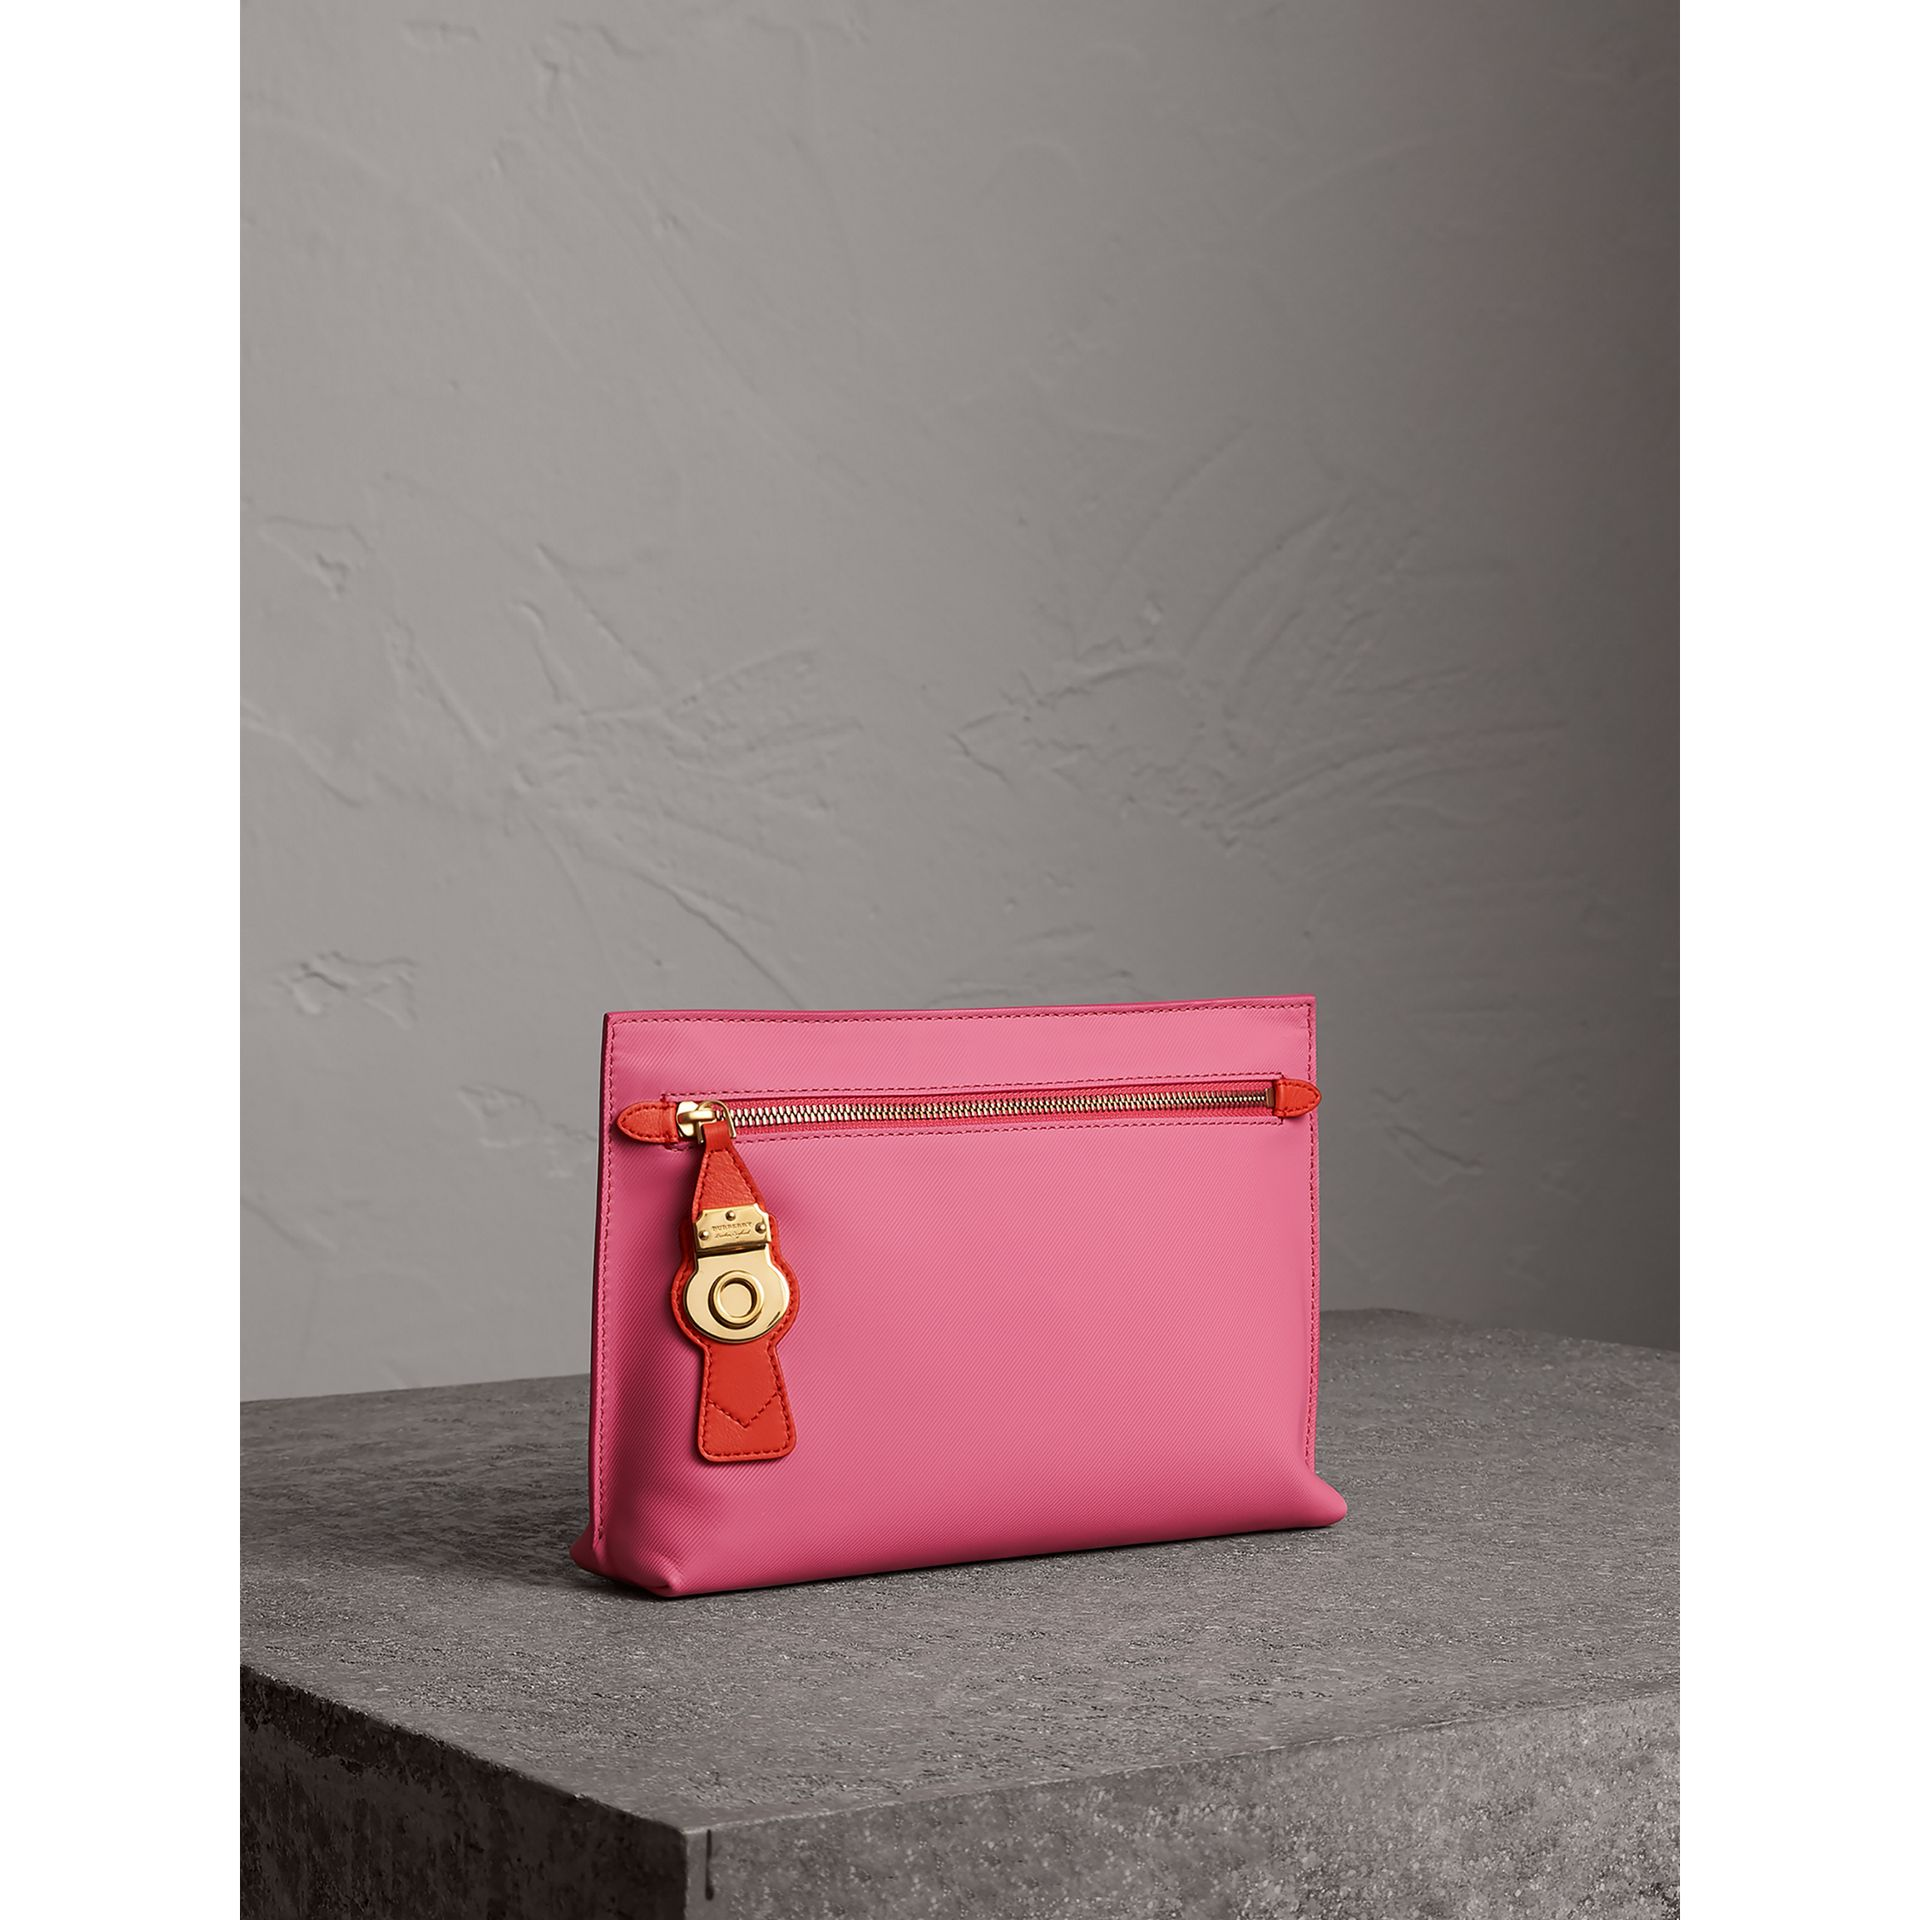 Two-tone Trench Leather Wristlet Pouch in Rose Pink - Women | Burberry - gallery image 4